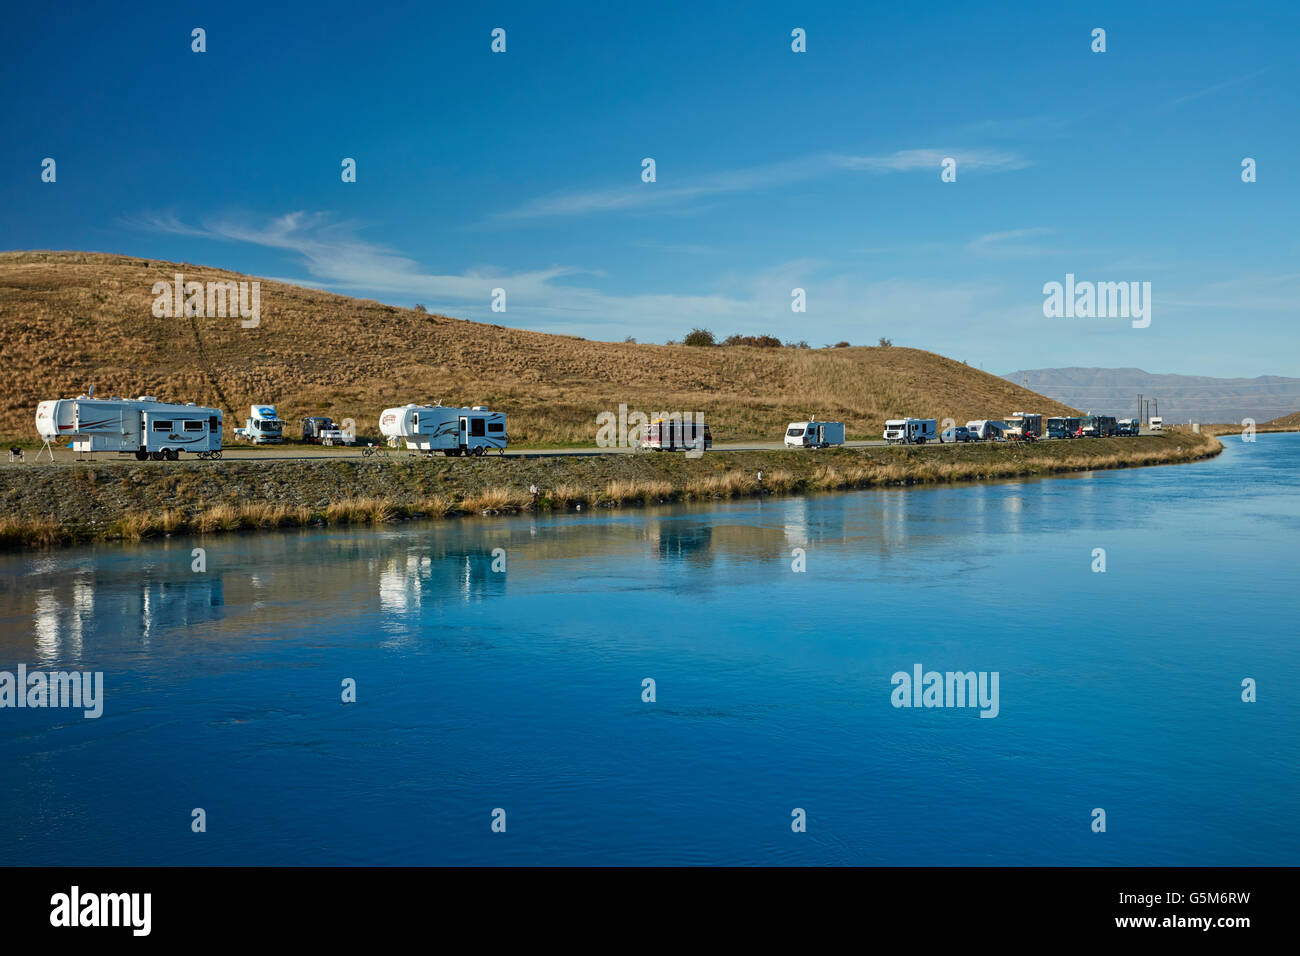 People fishing, caravans and campervans by Lake Ruataniwha, near Twizel, Mackenzie District, South Canterbury, New - Stock Image